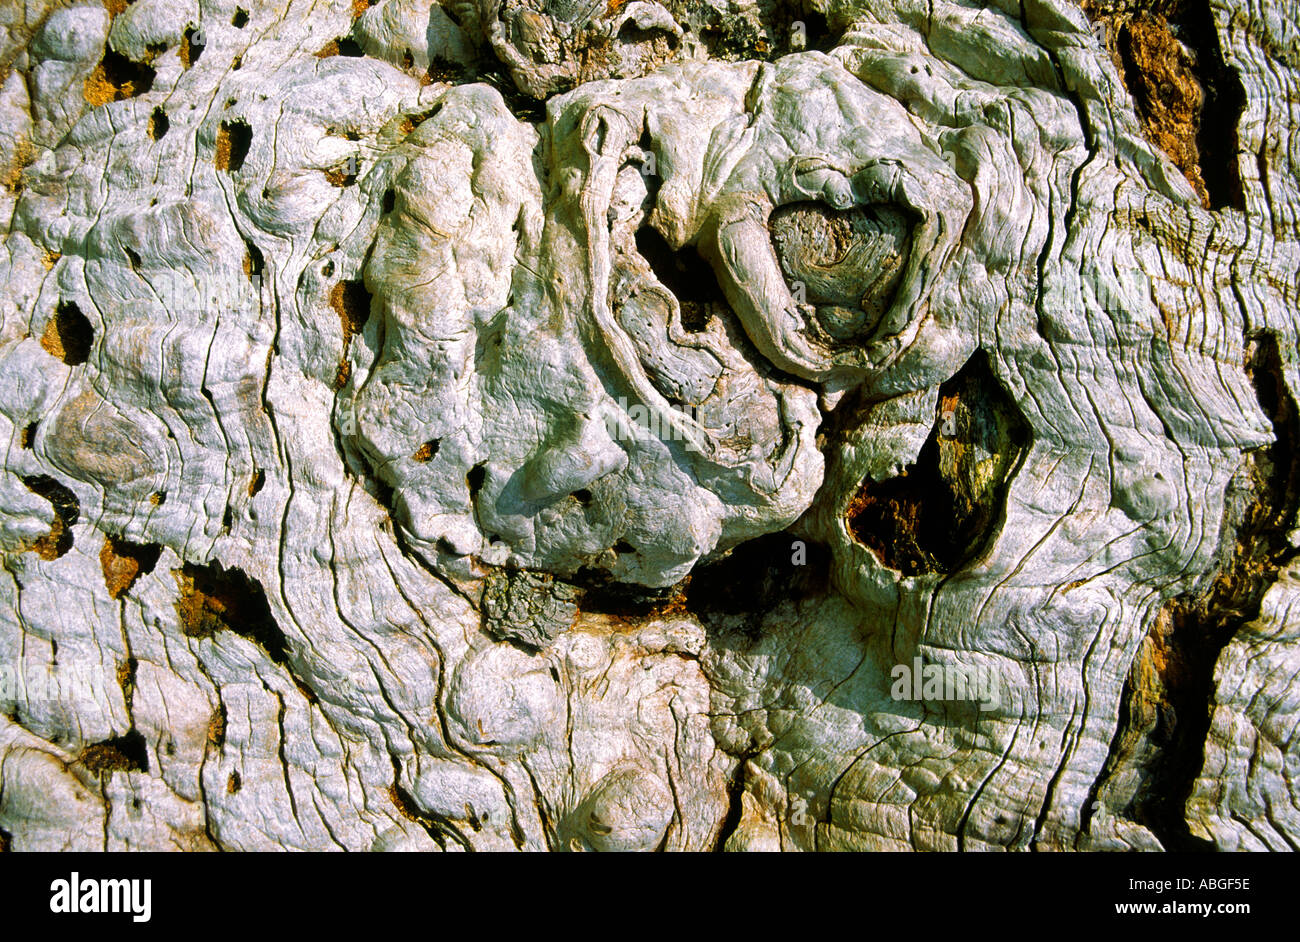 The trunk of an elm tree which had been killed by Dutch Elm Disease - Stock Image